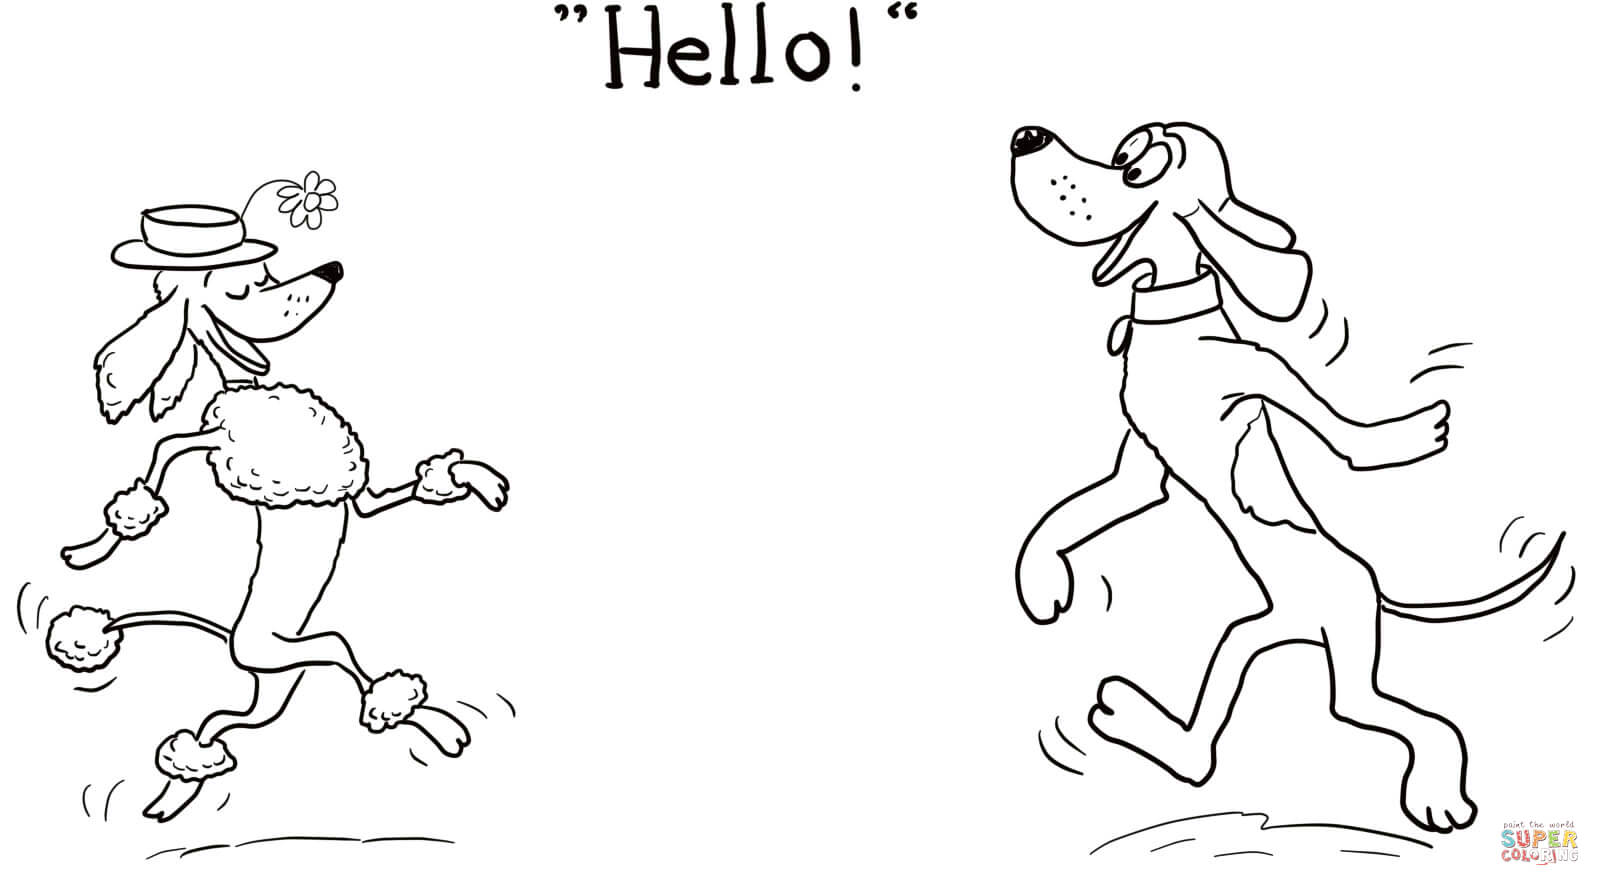 Dog Says Hello Coloring Online